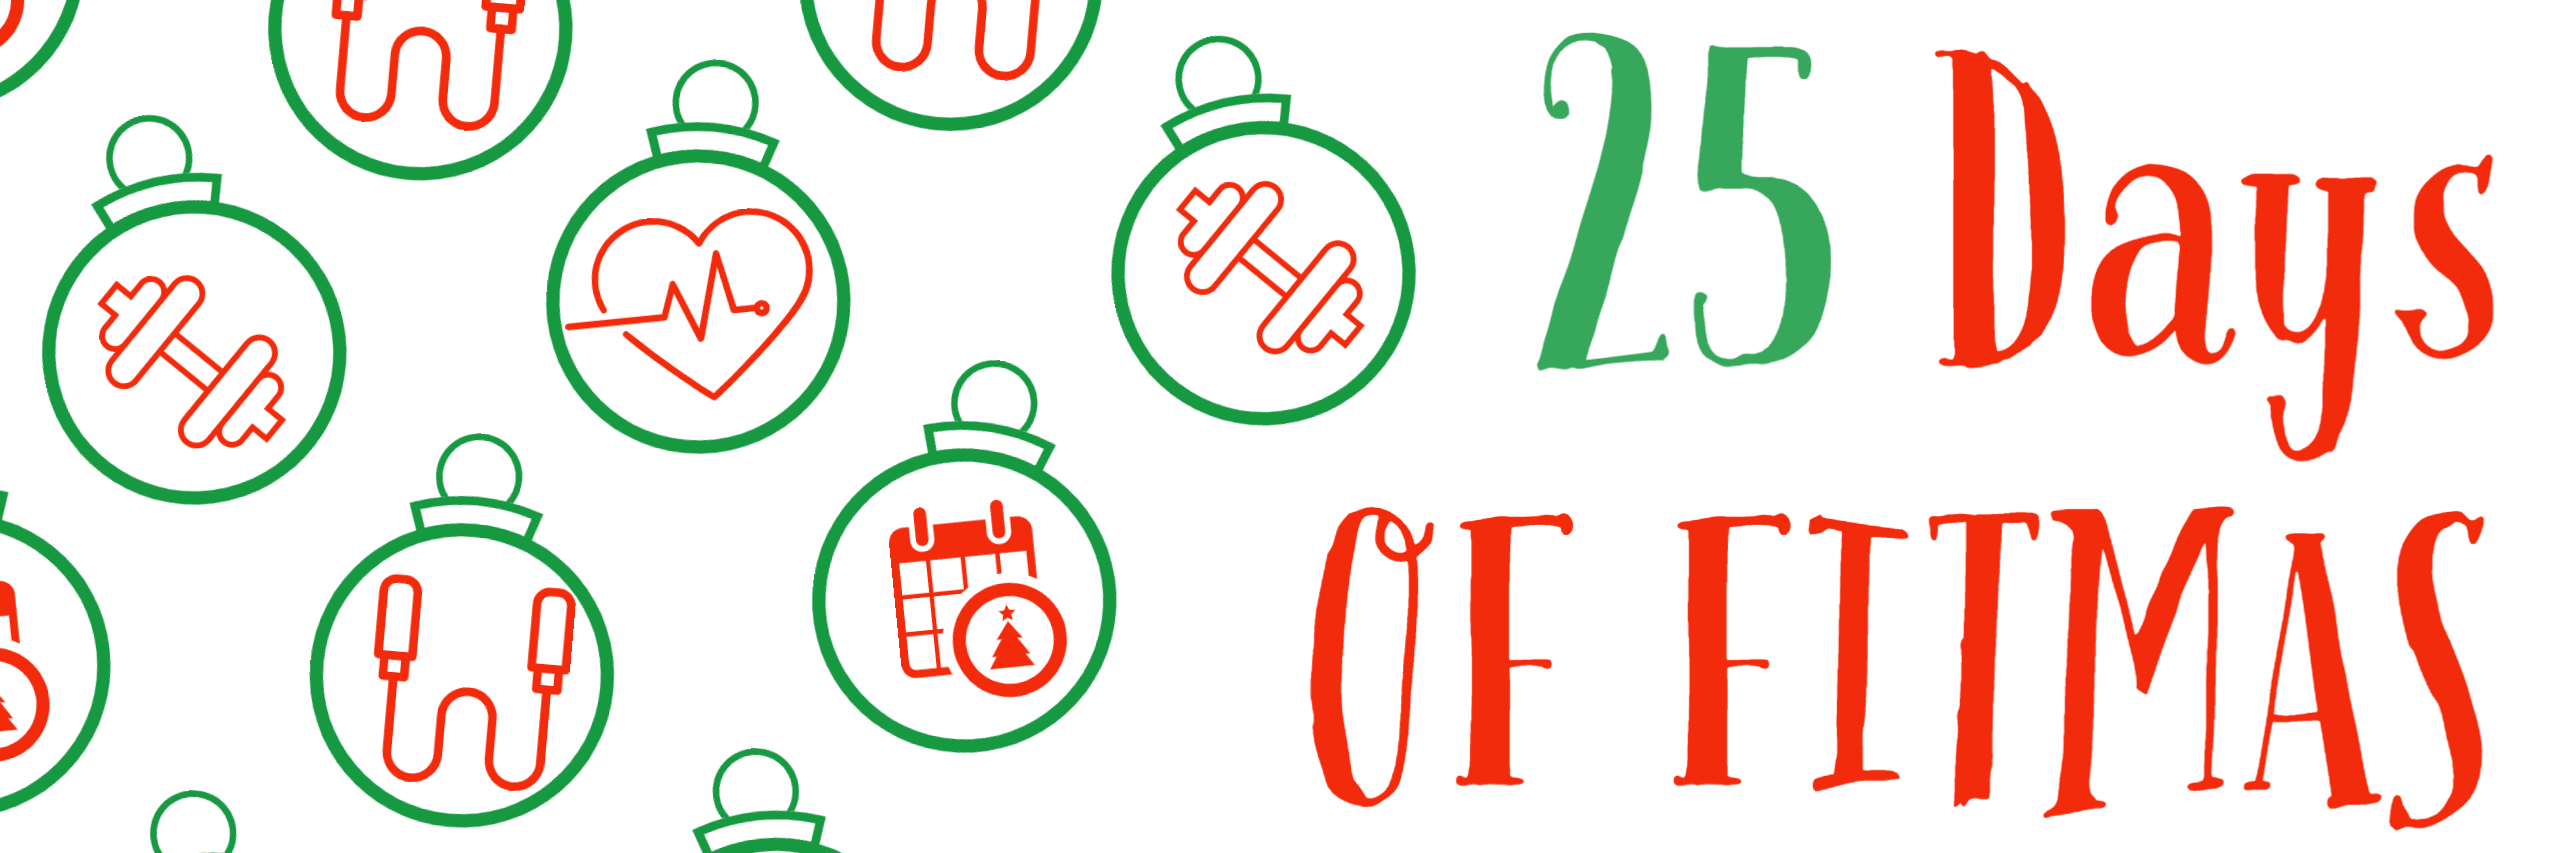 25 Days of Fitness Banner  (4)[6512]